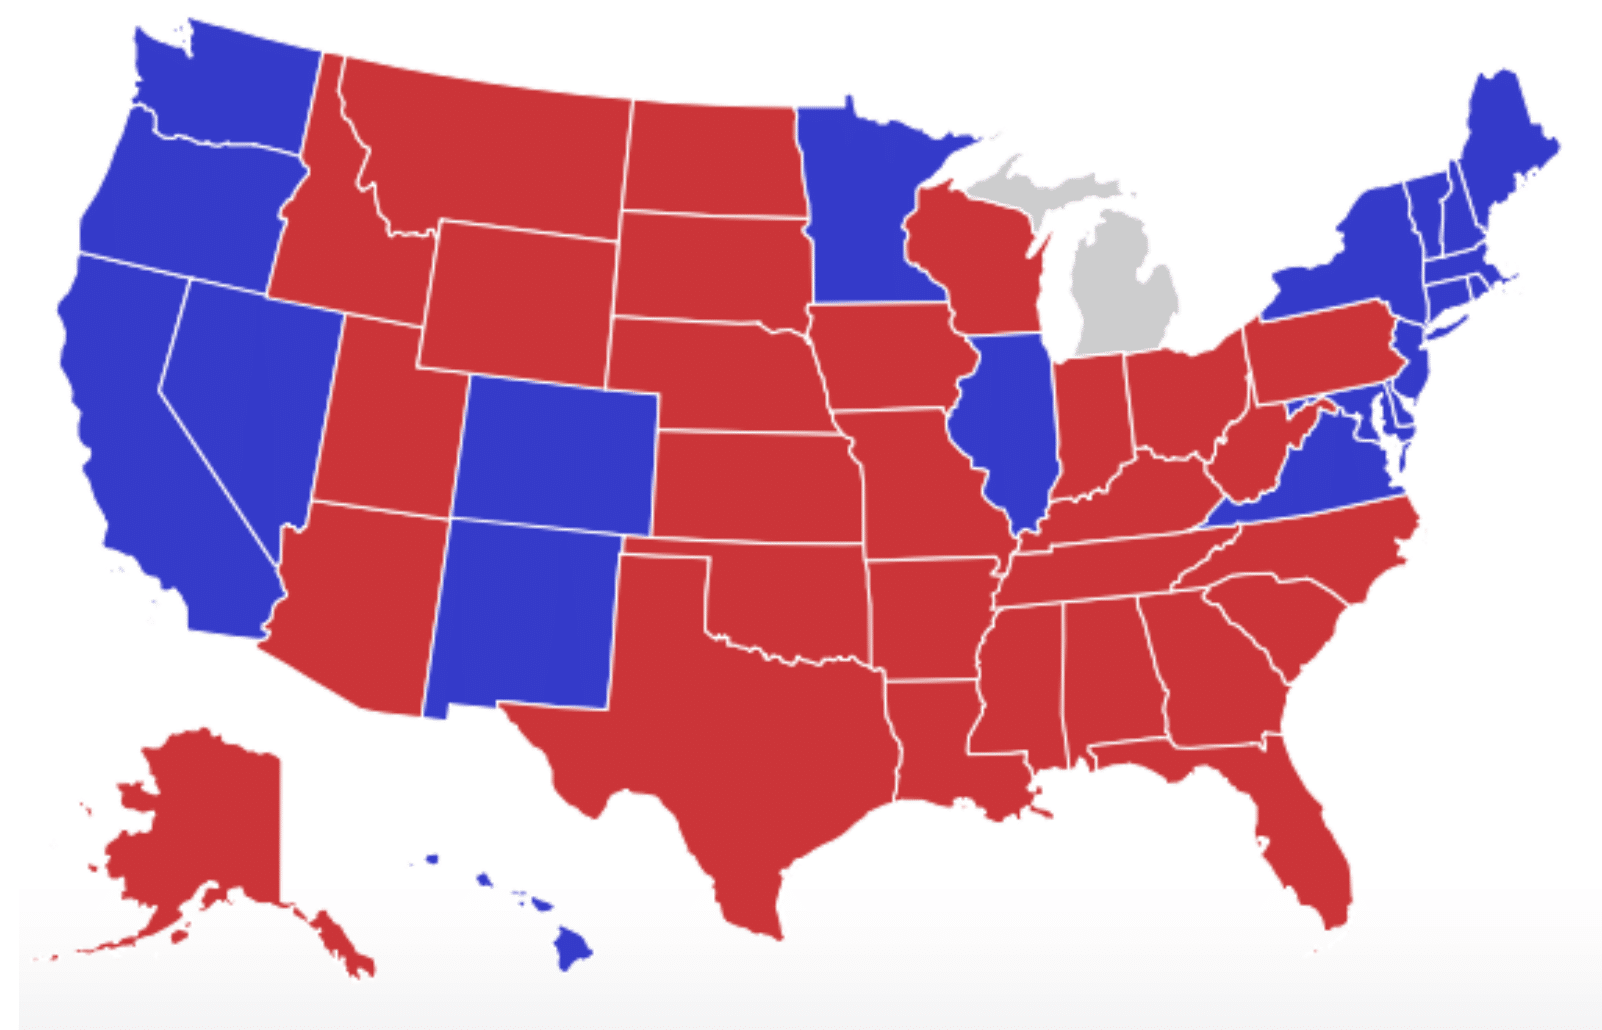 The Electoral Map as it stands now. Trump currently leads Michigan, but it won't be called until the Michigan Secretary of State certifies the vote.